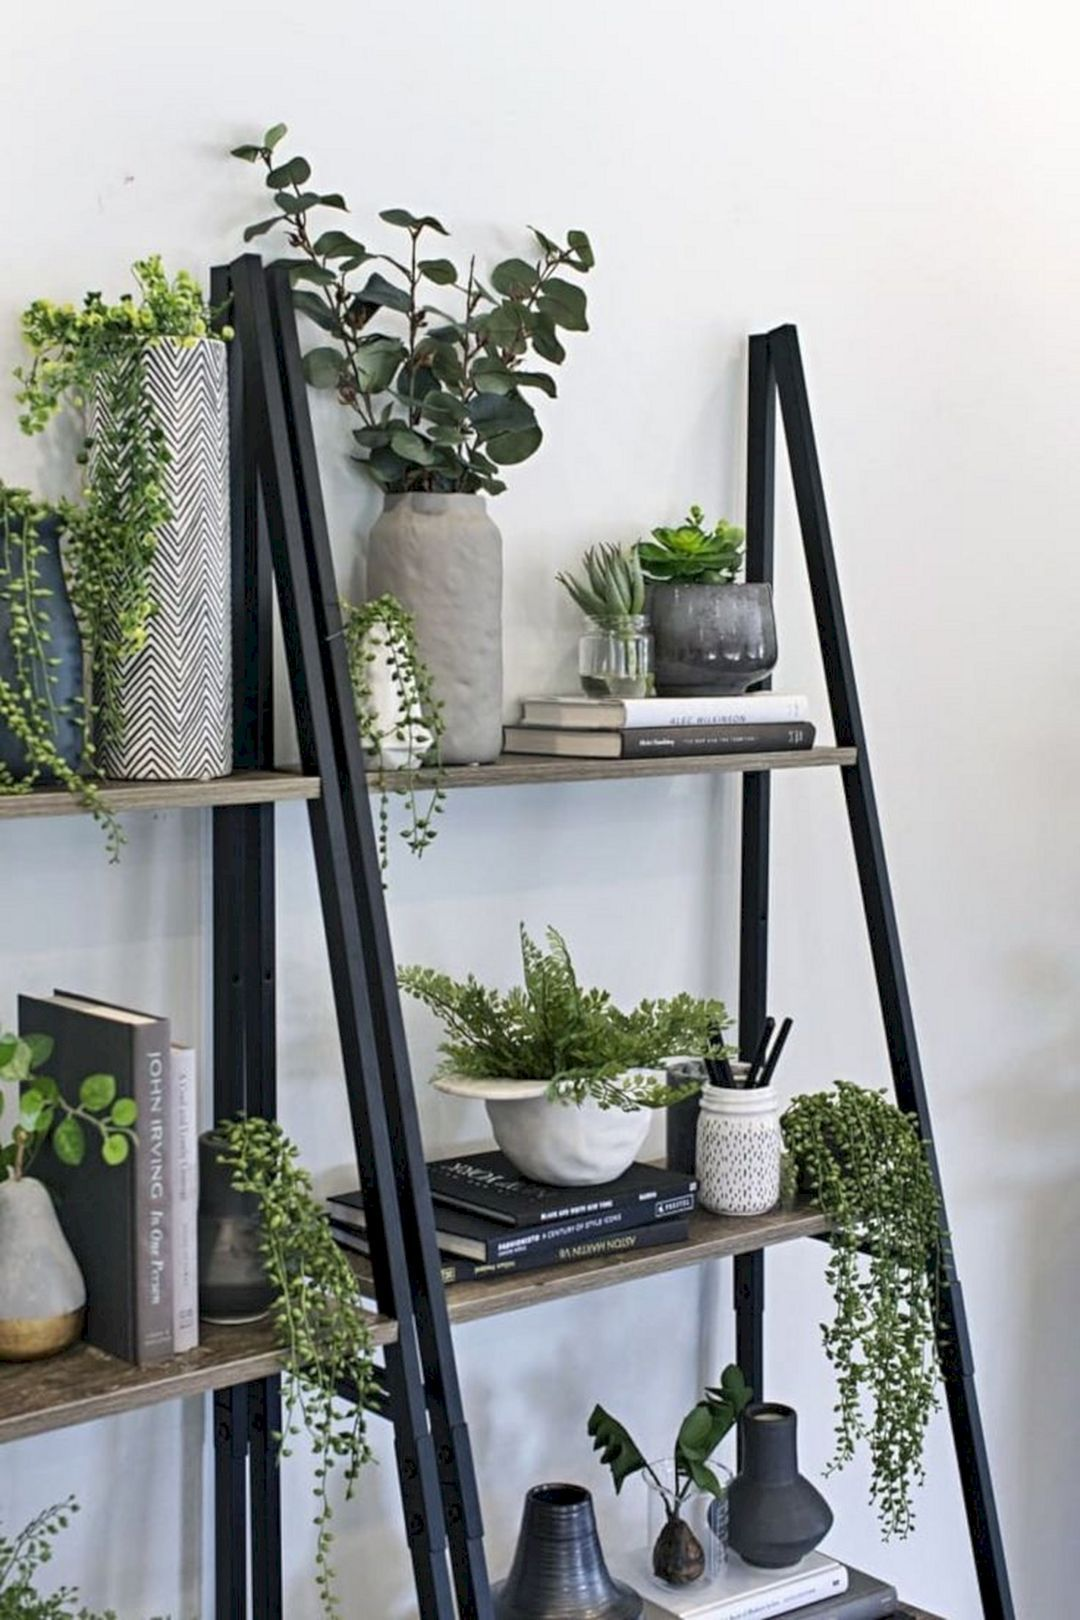 14 Stunning Living Room Decoration With Ladder Plants Ideas